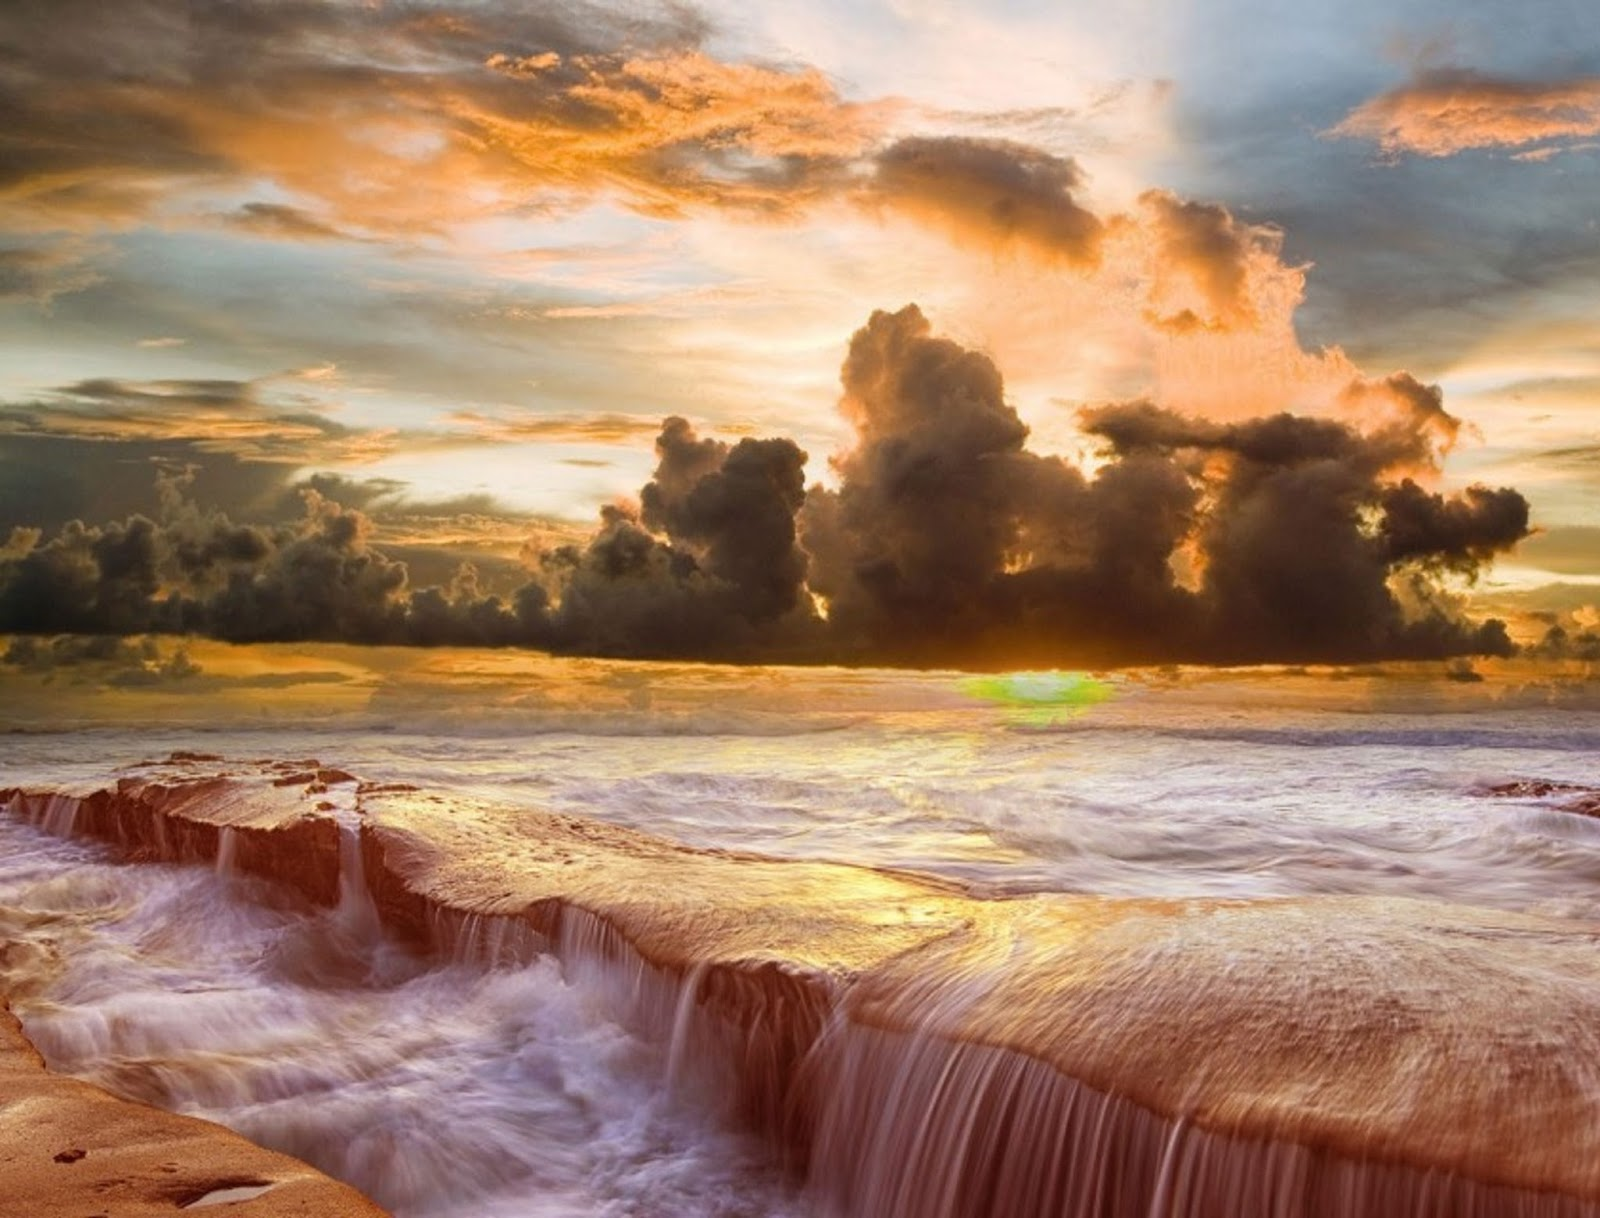 Beautiful Image Download - FREE ALL HD WALLPAPERS DOWNLOAD